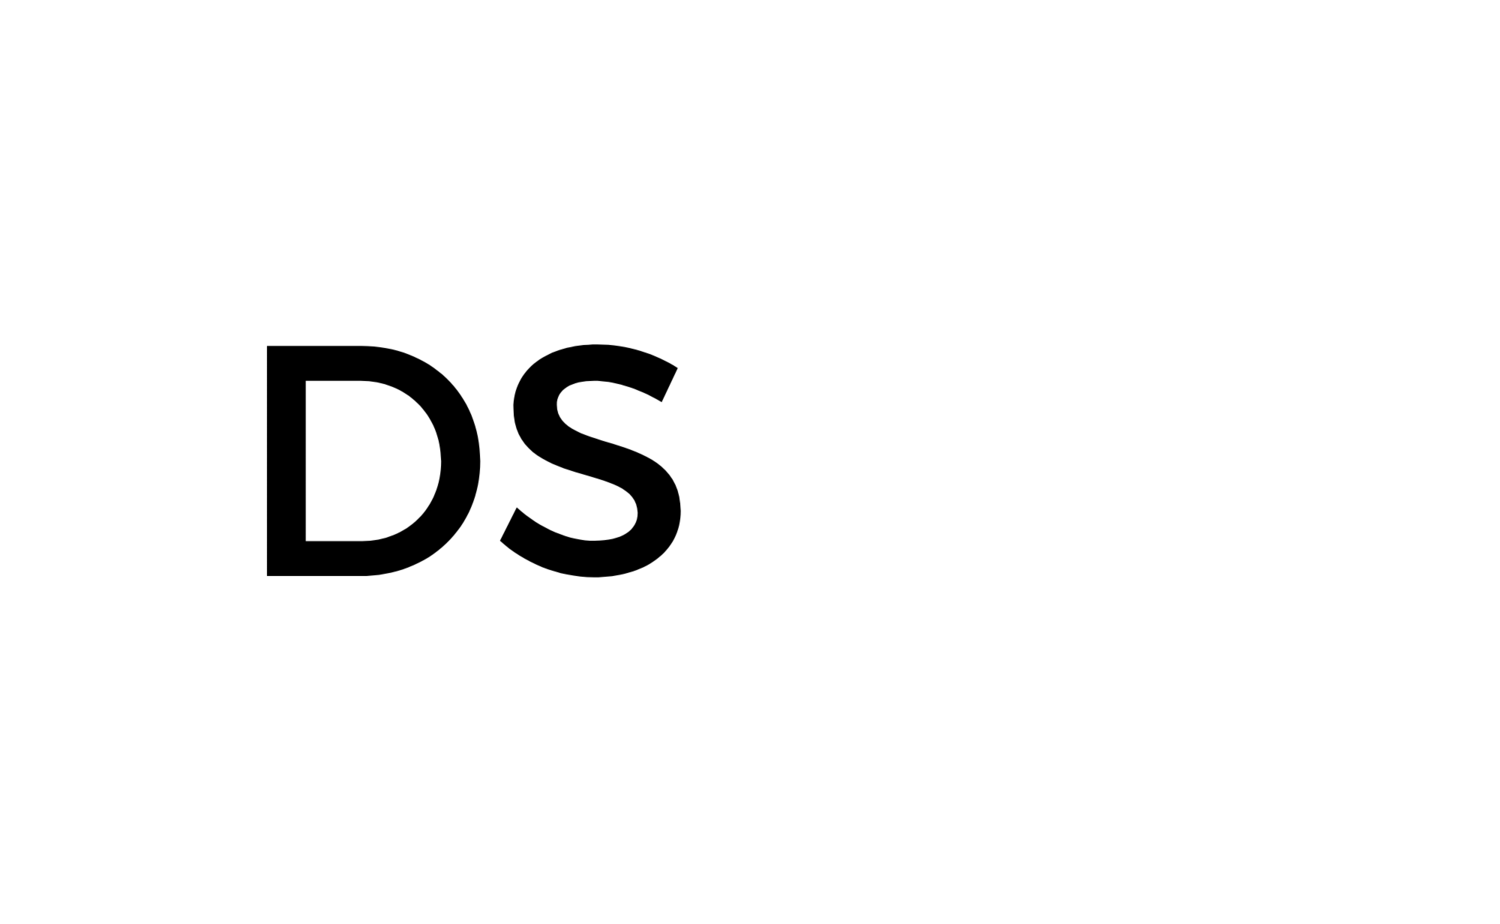 DS Analytics | Data Science & Machine Learning Consultancy